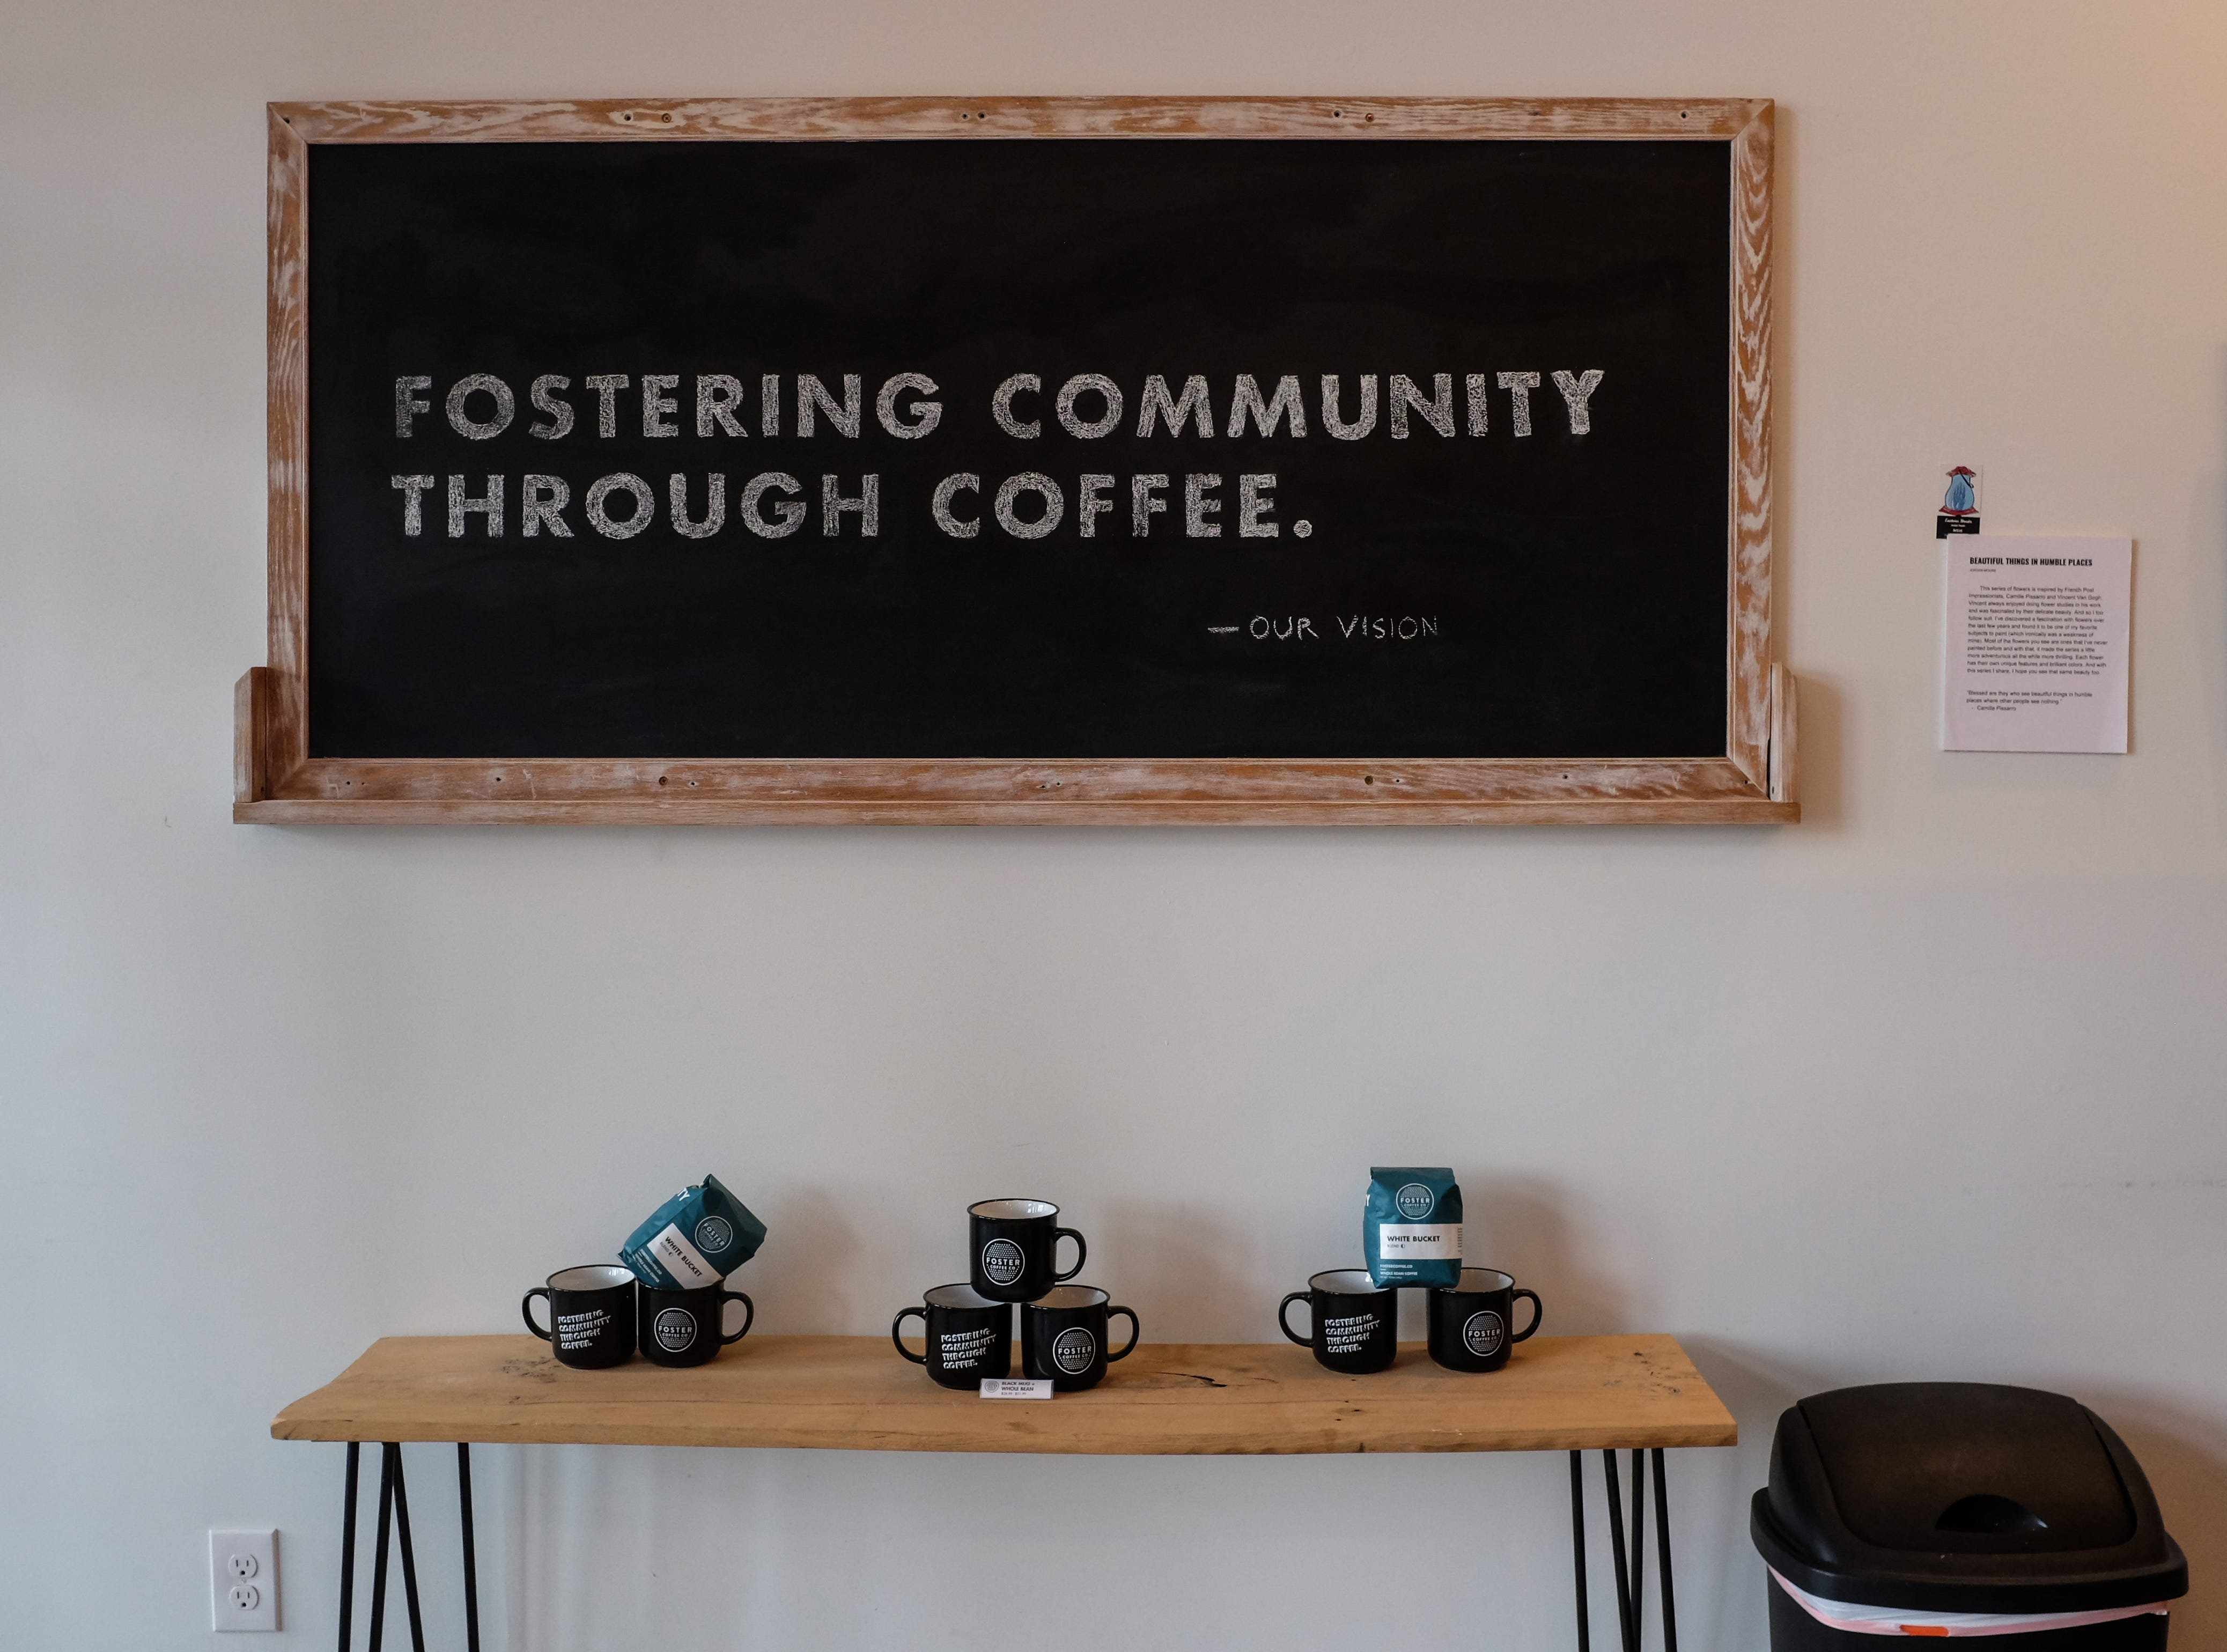 Foster Coffee Company in Owosso uses a play on words as a motto in their signage and a clean look in their shop.